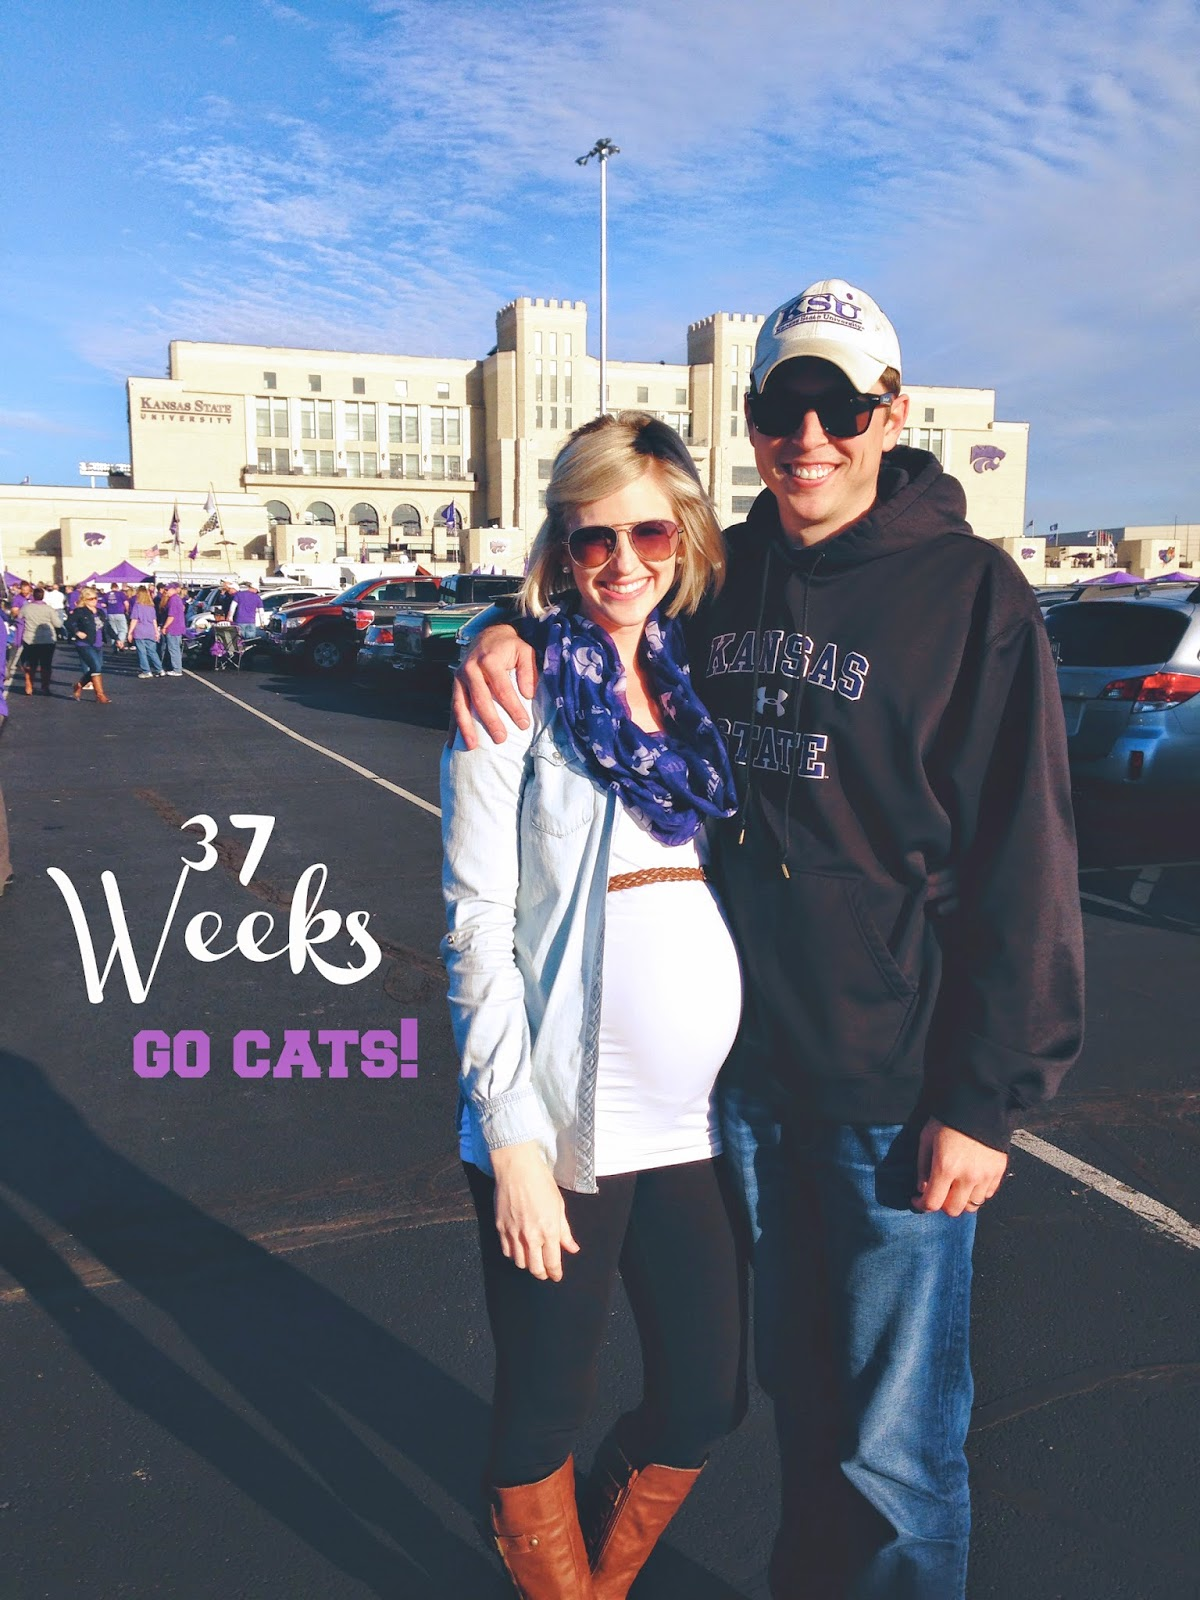 37 Weeks + why I might be CRAZY